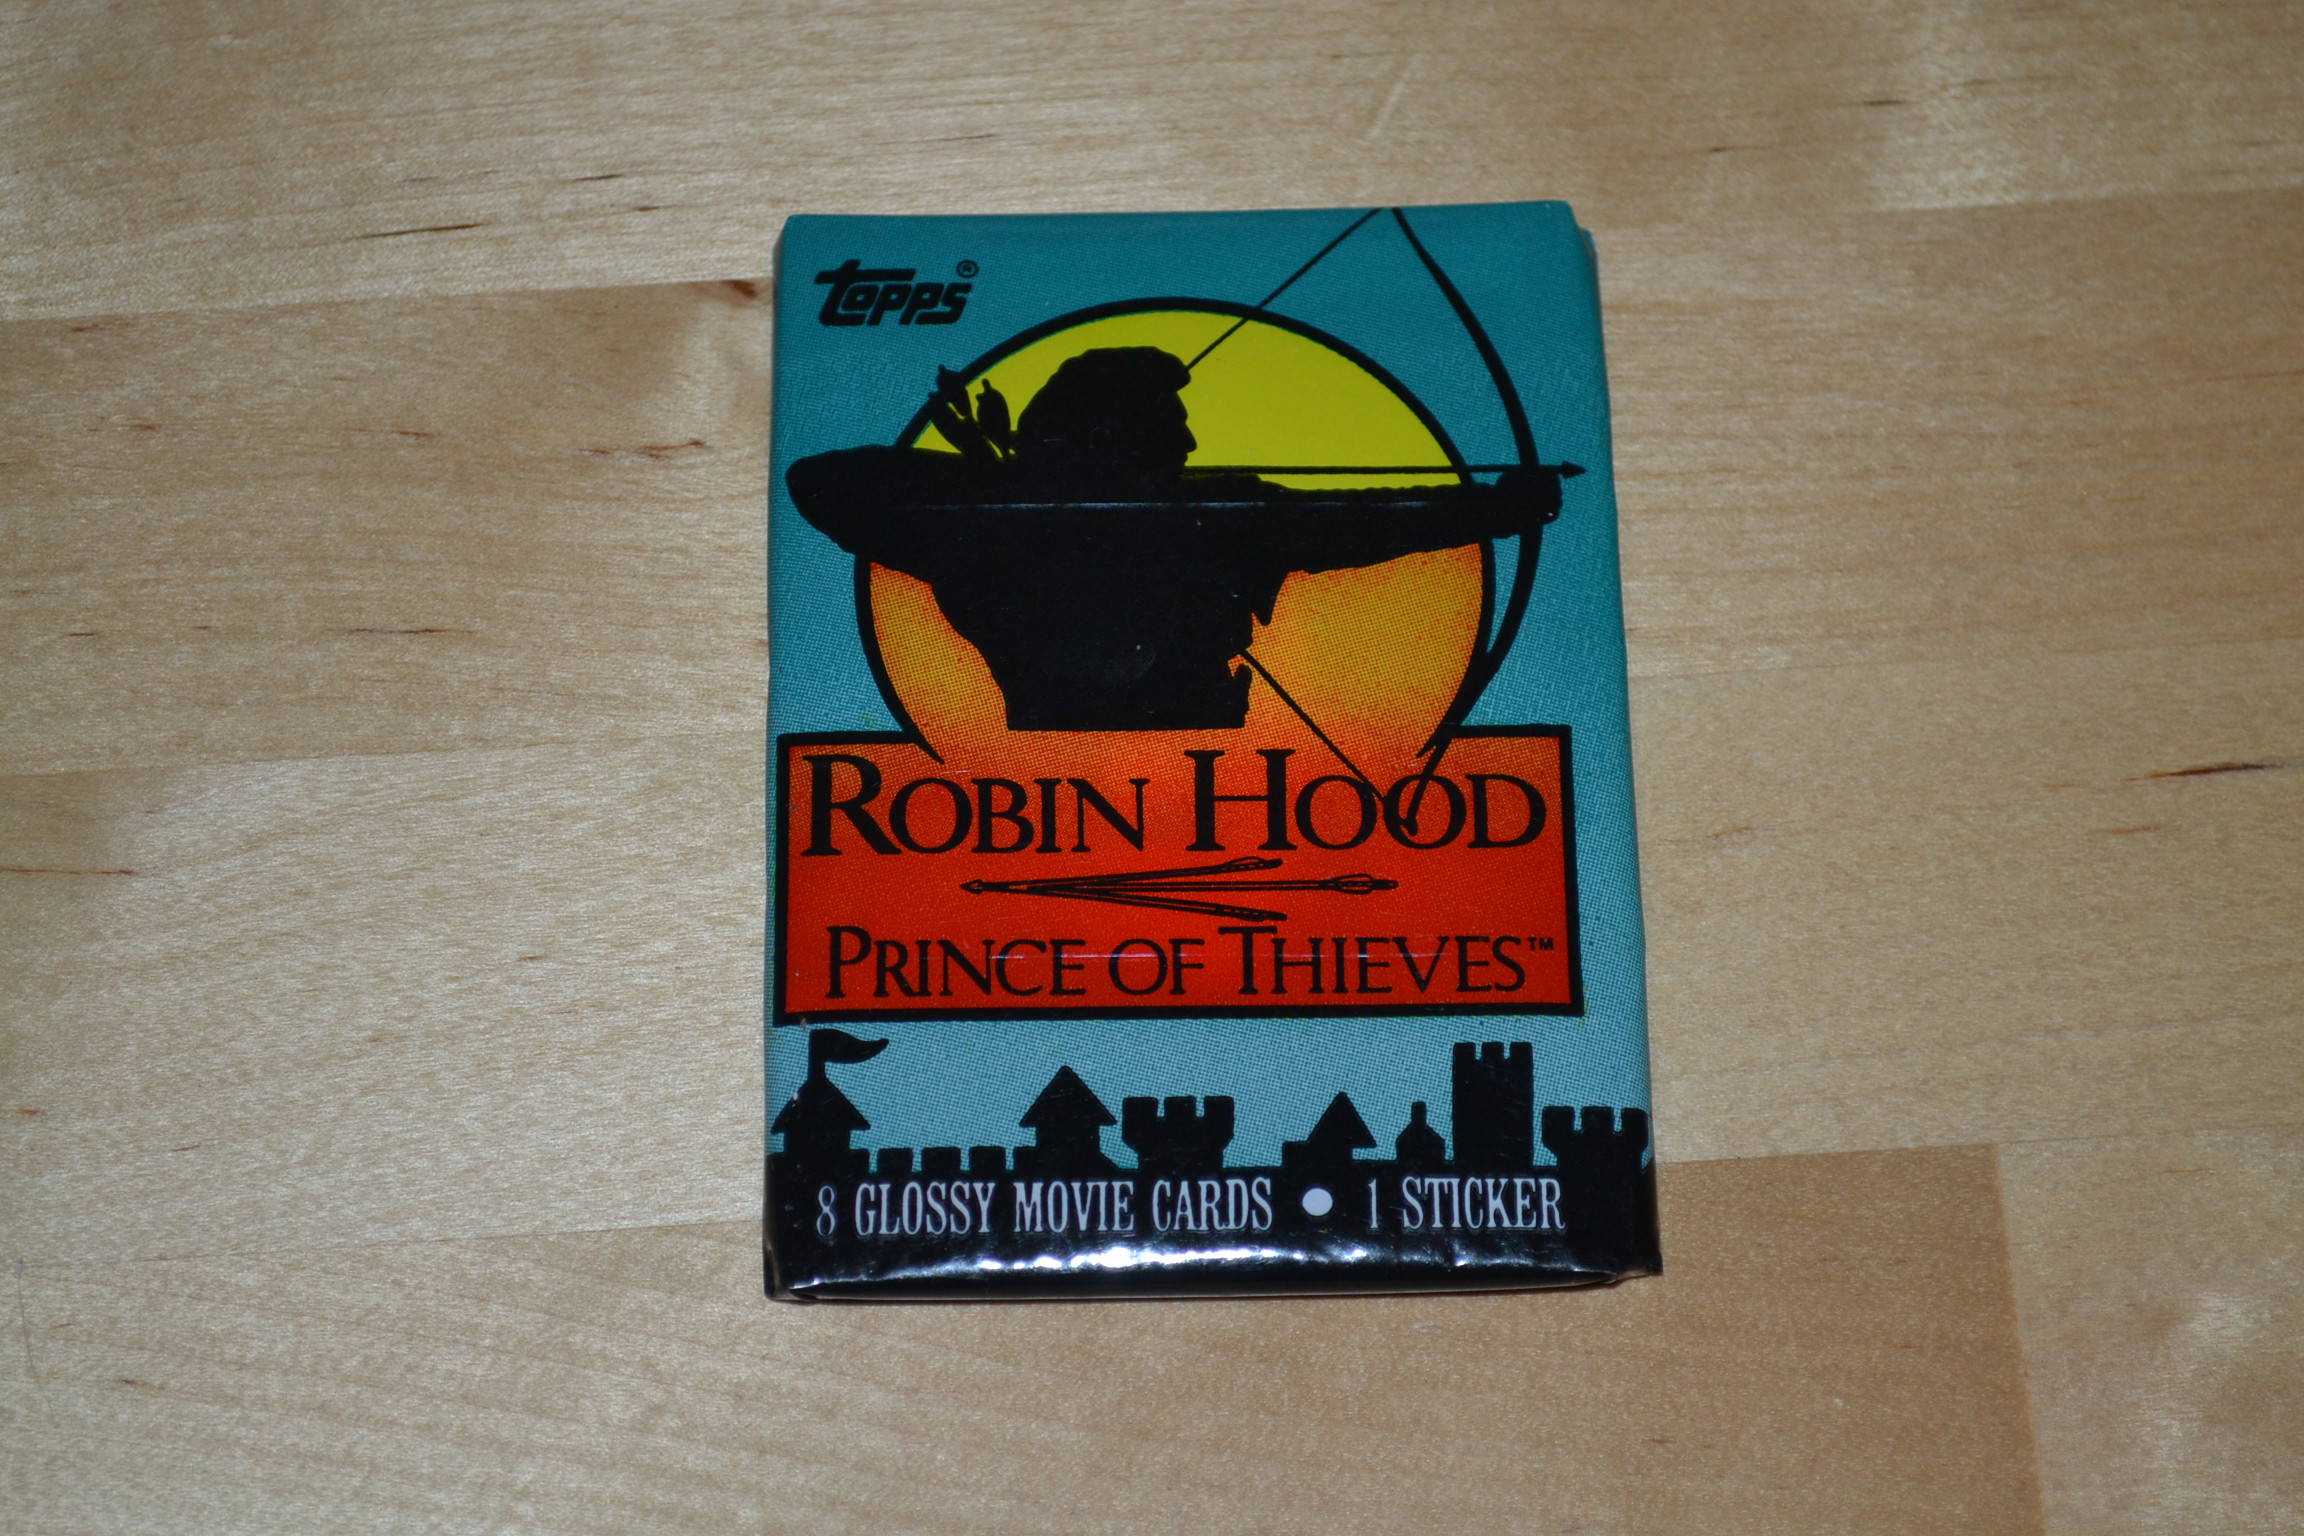 1991 Topps Morgan Creek Robin Hood Price Of Thieves Kevin Costner 8